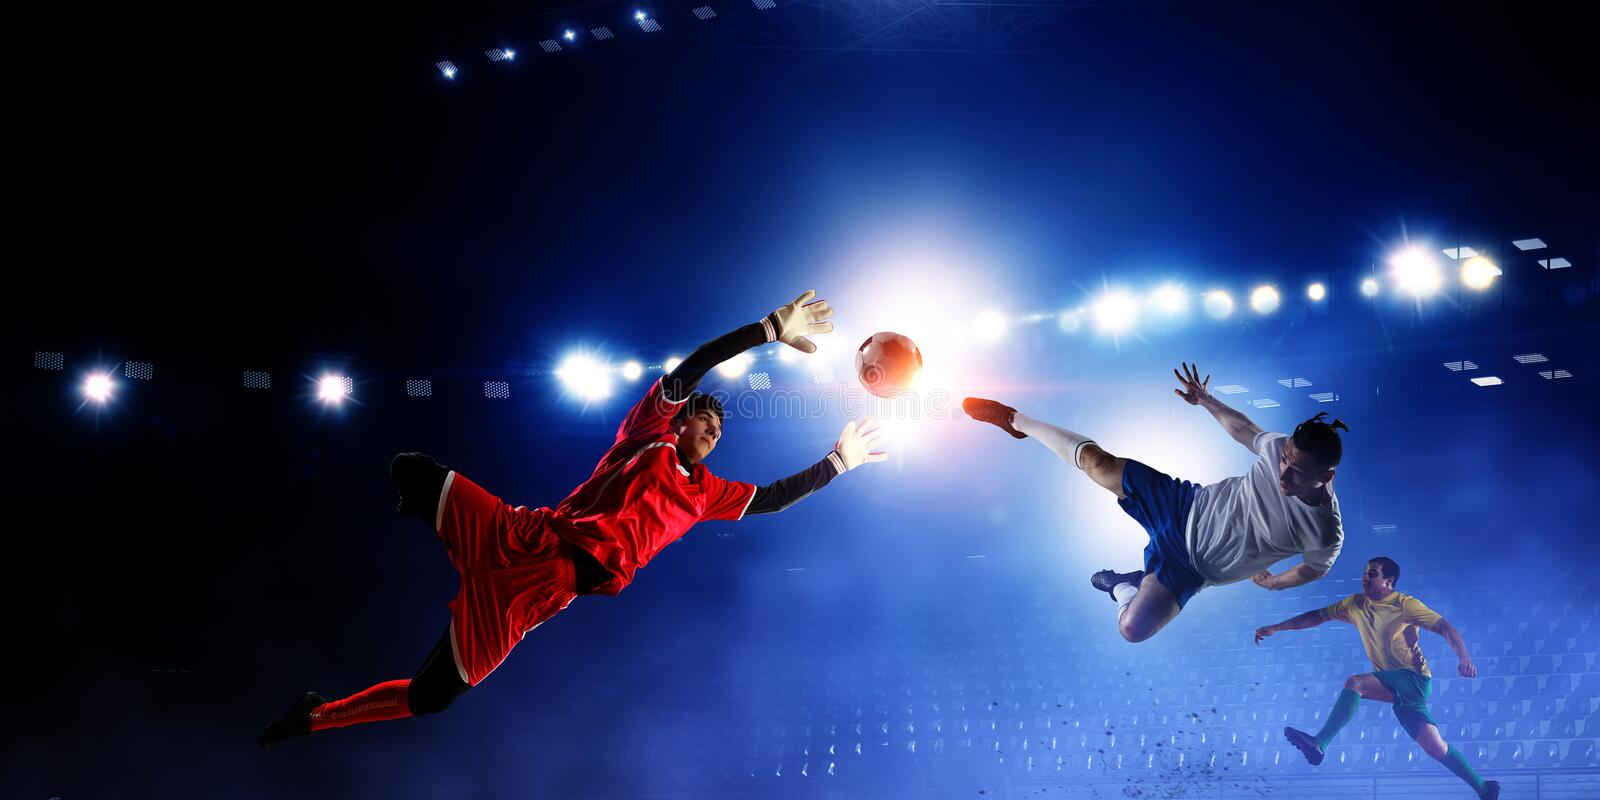 Soccer theme - hottest match moments stock image